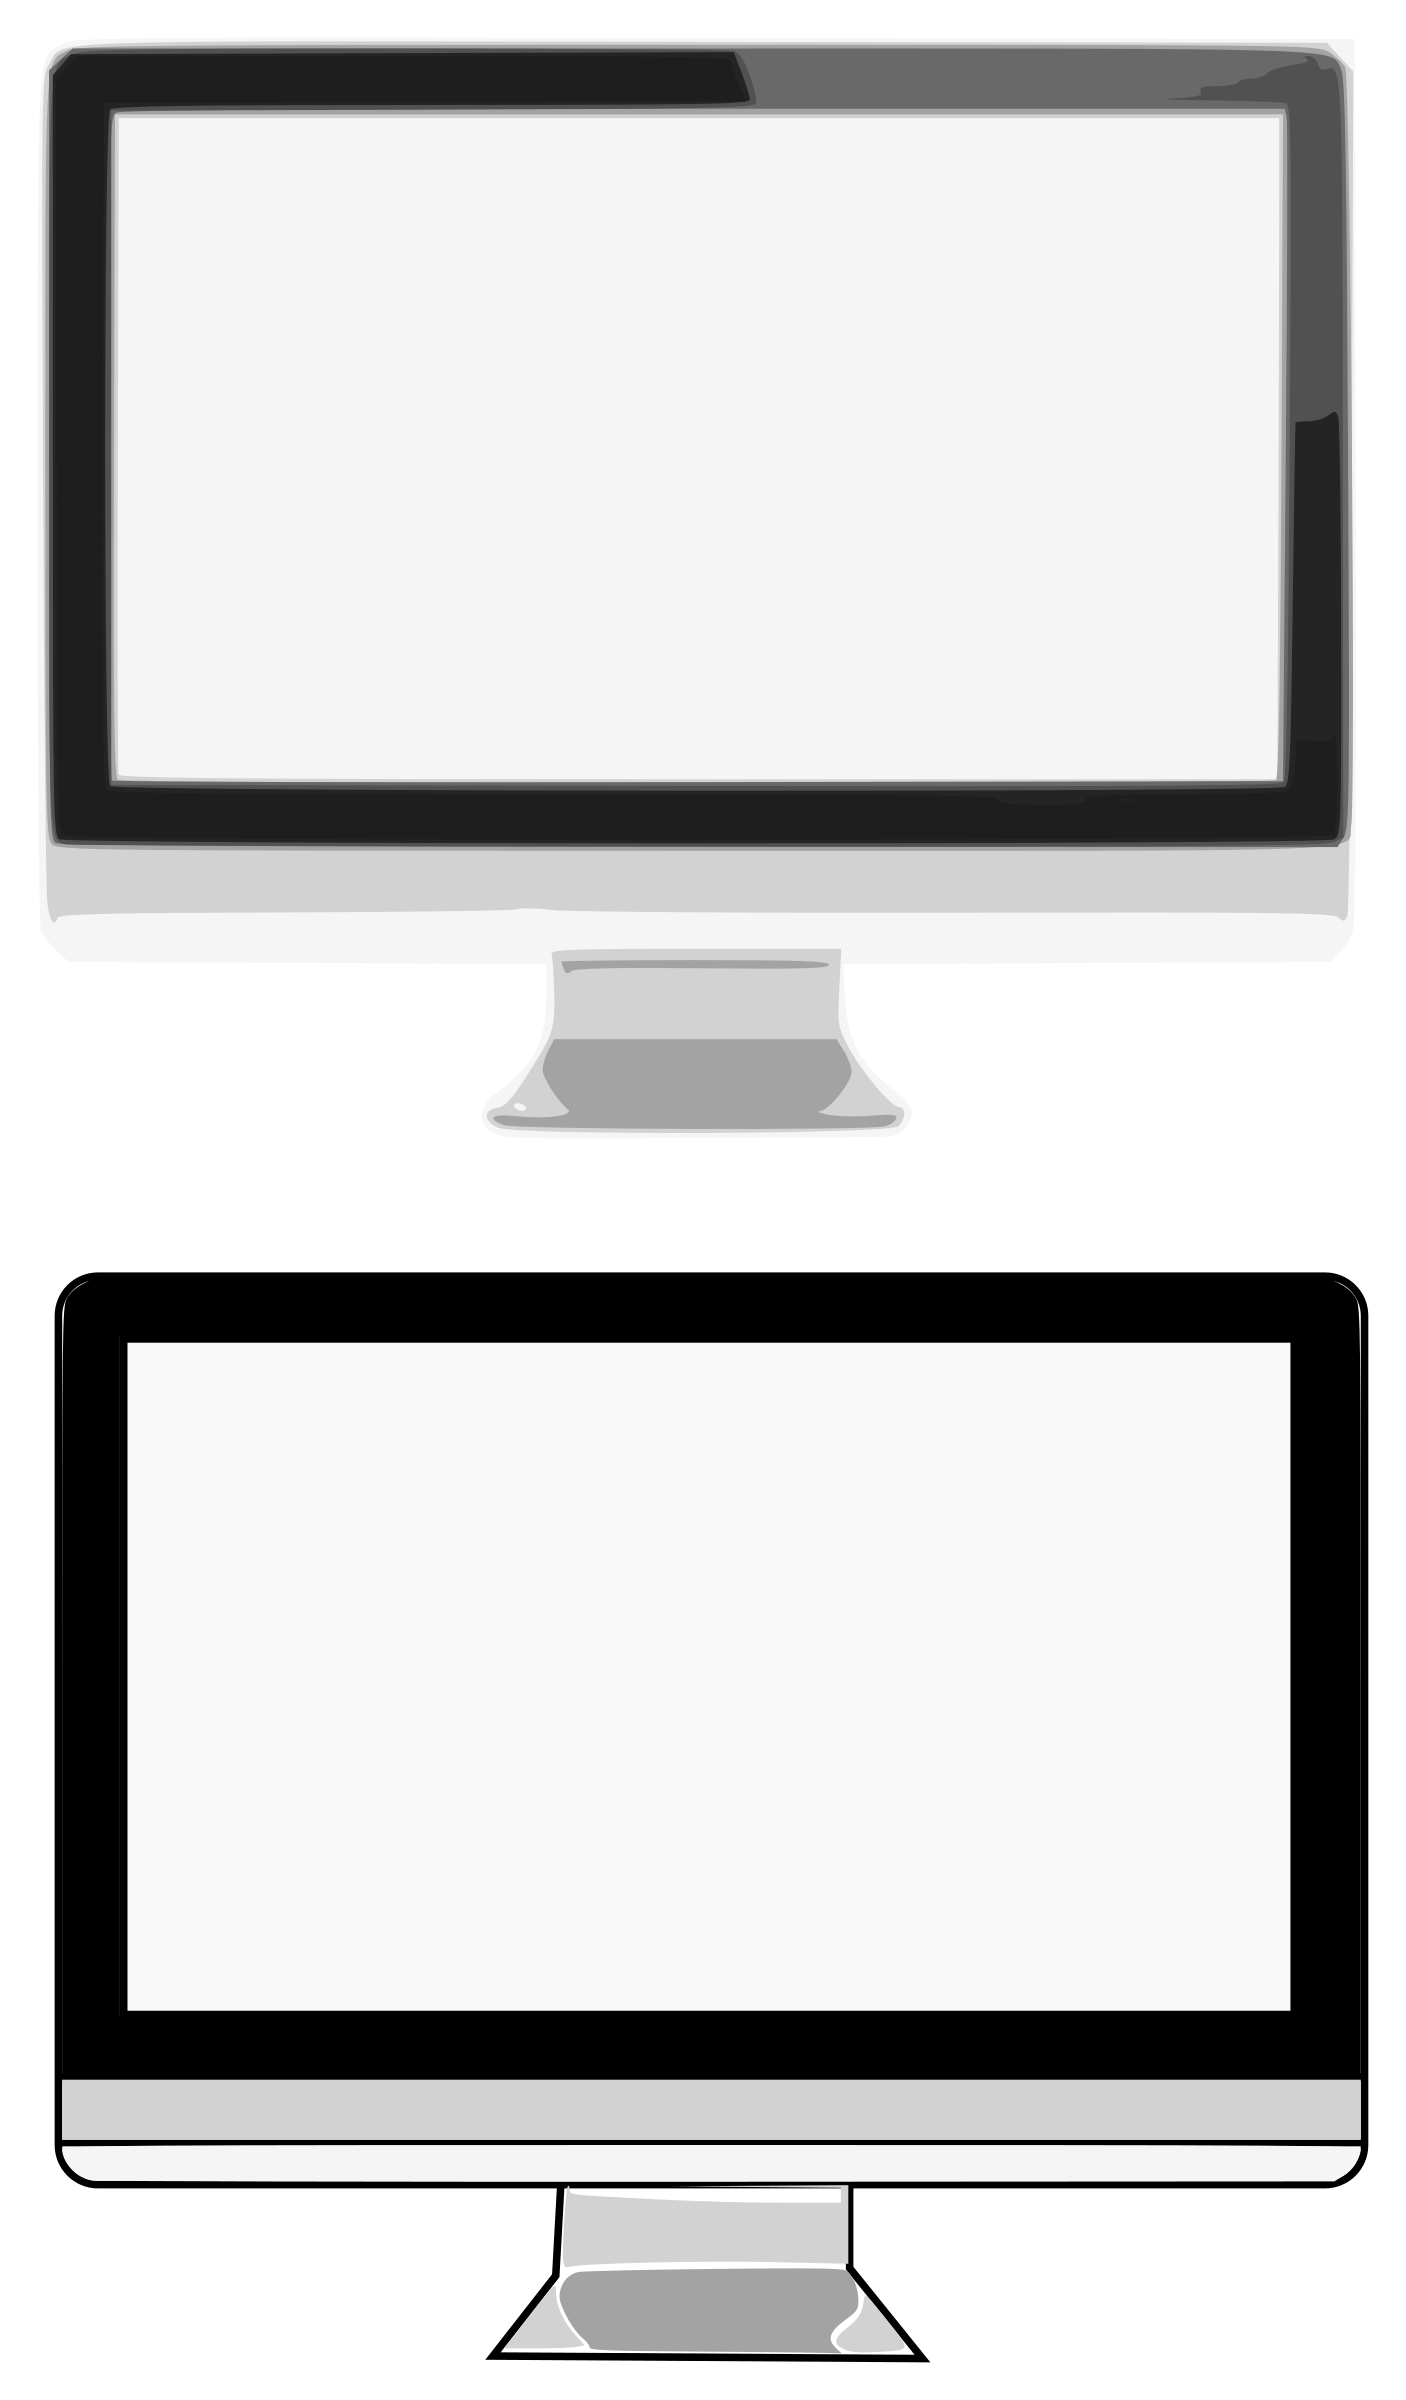 Monitors big image png. Office clipart monitor